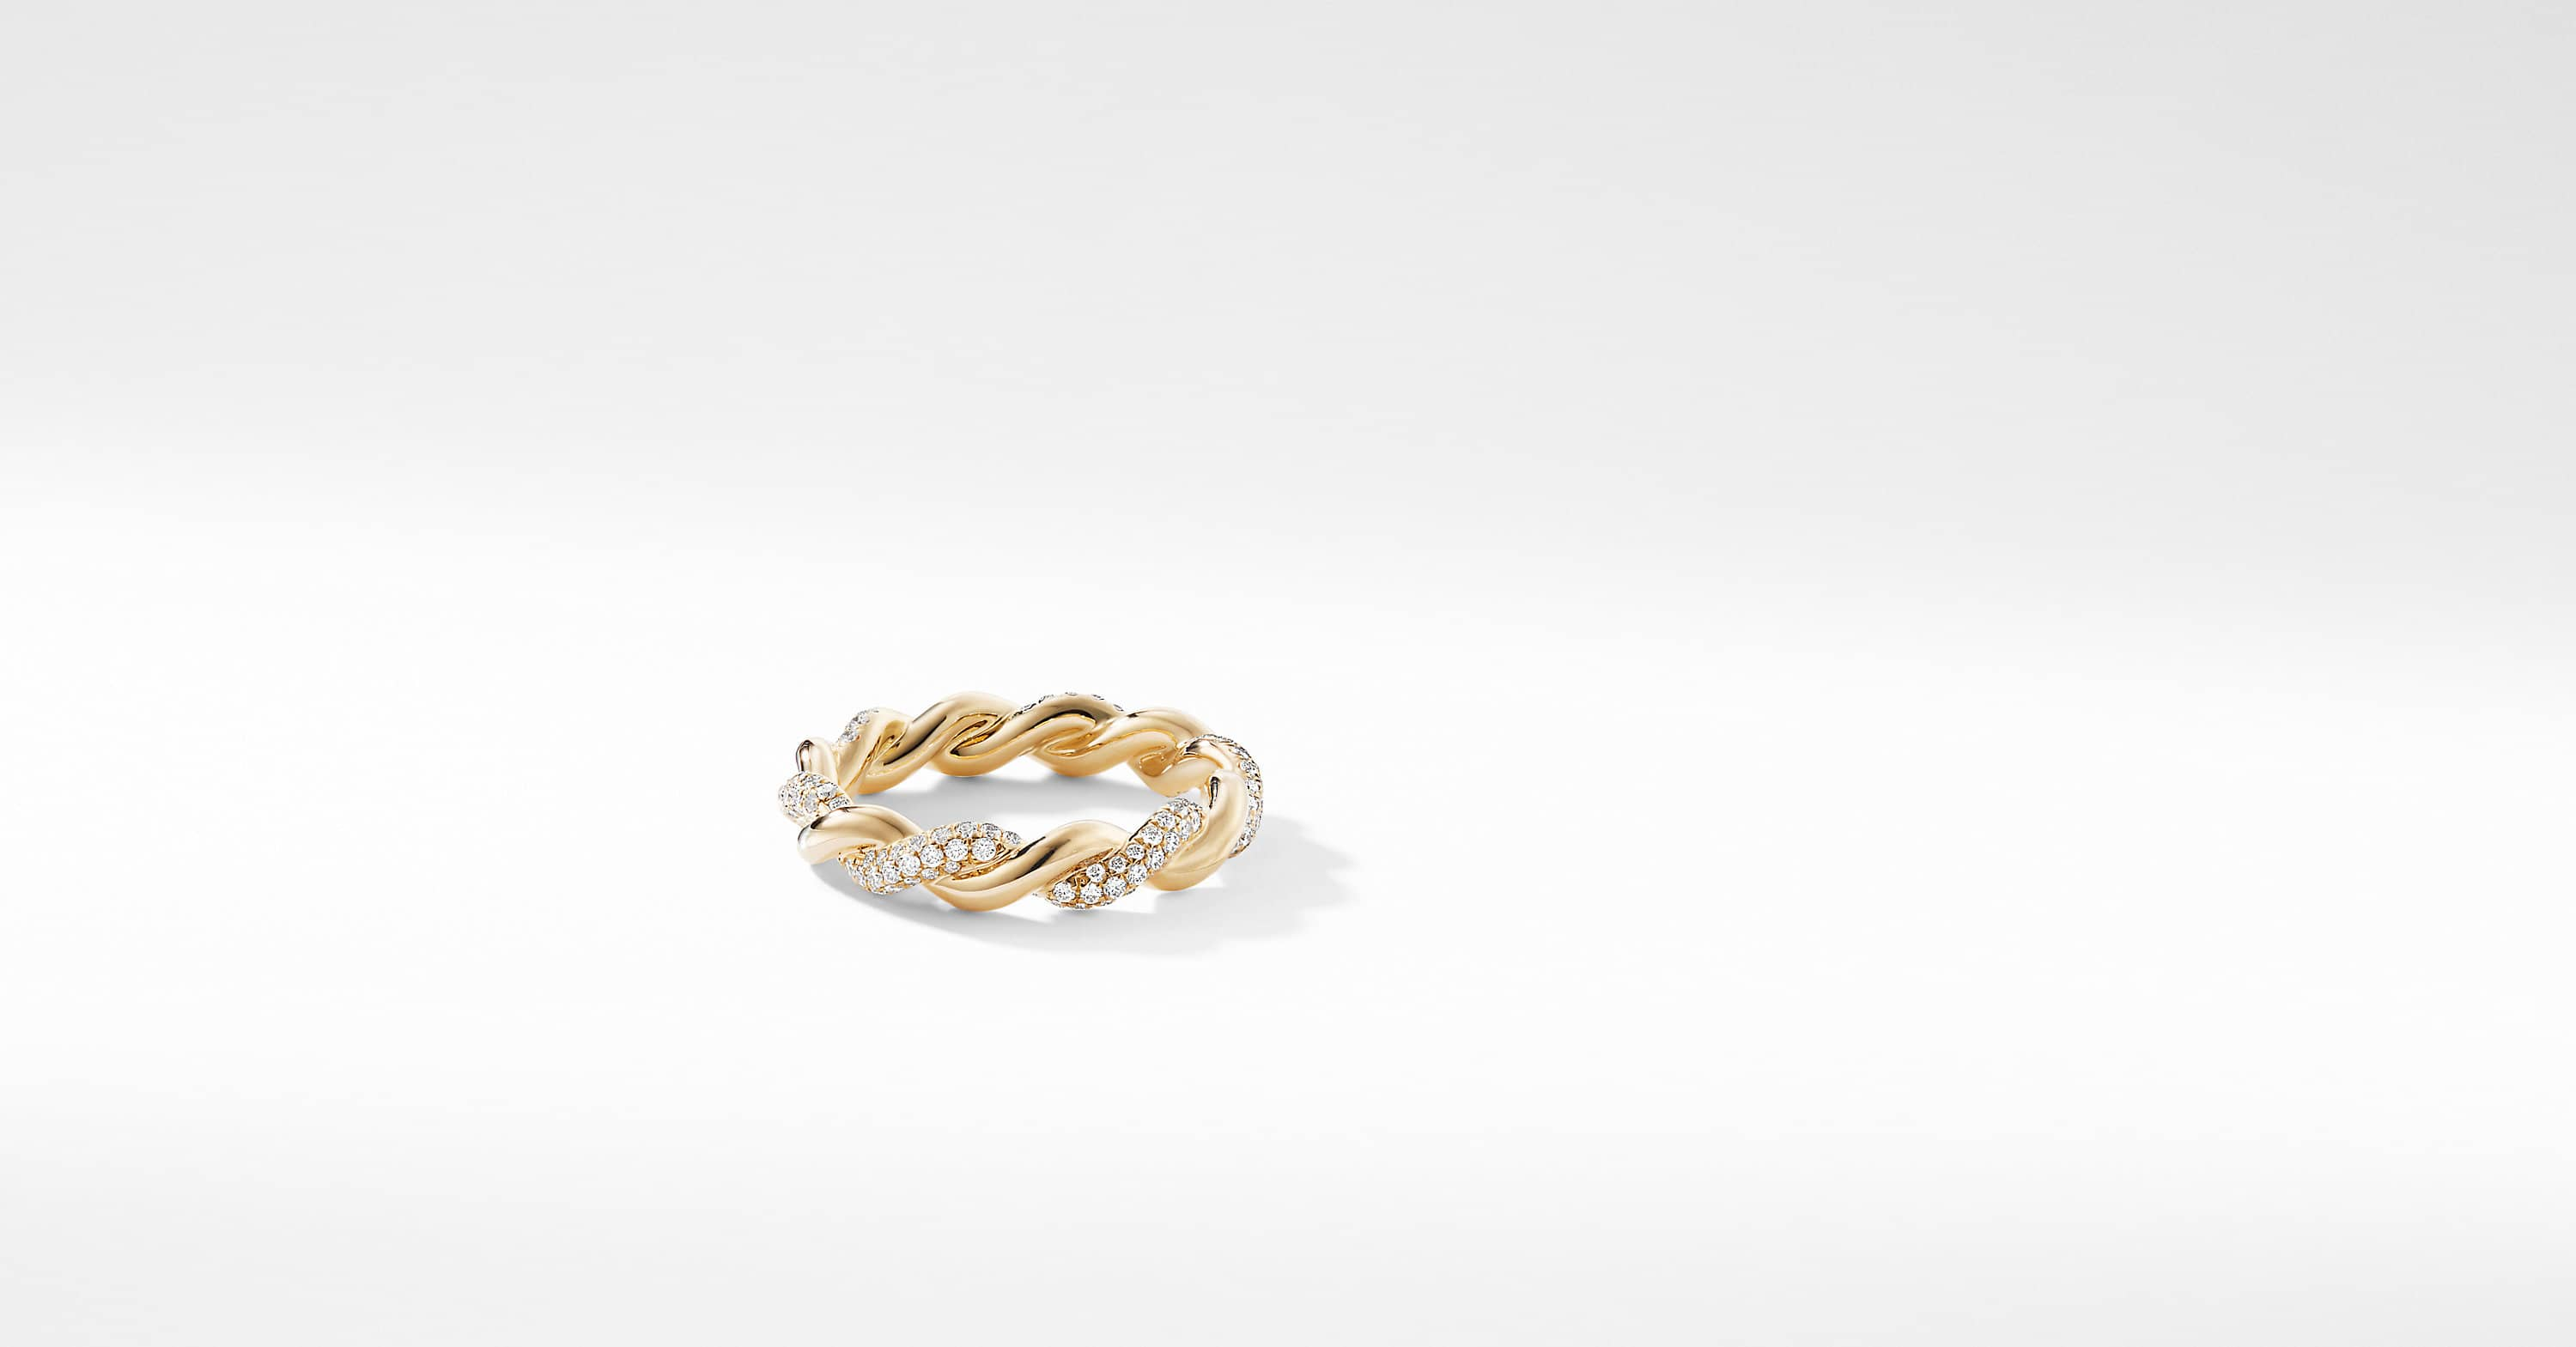 Wisteria Twist Ring with Diamonds in 18K Gold